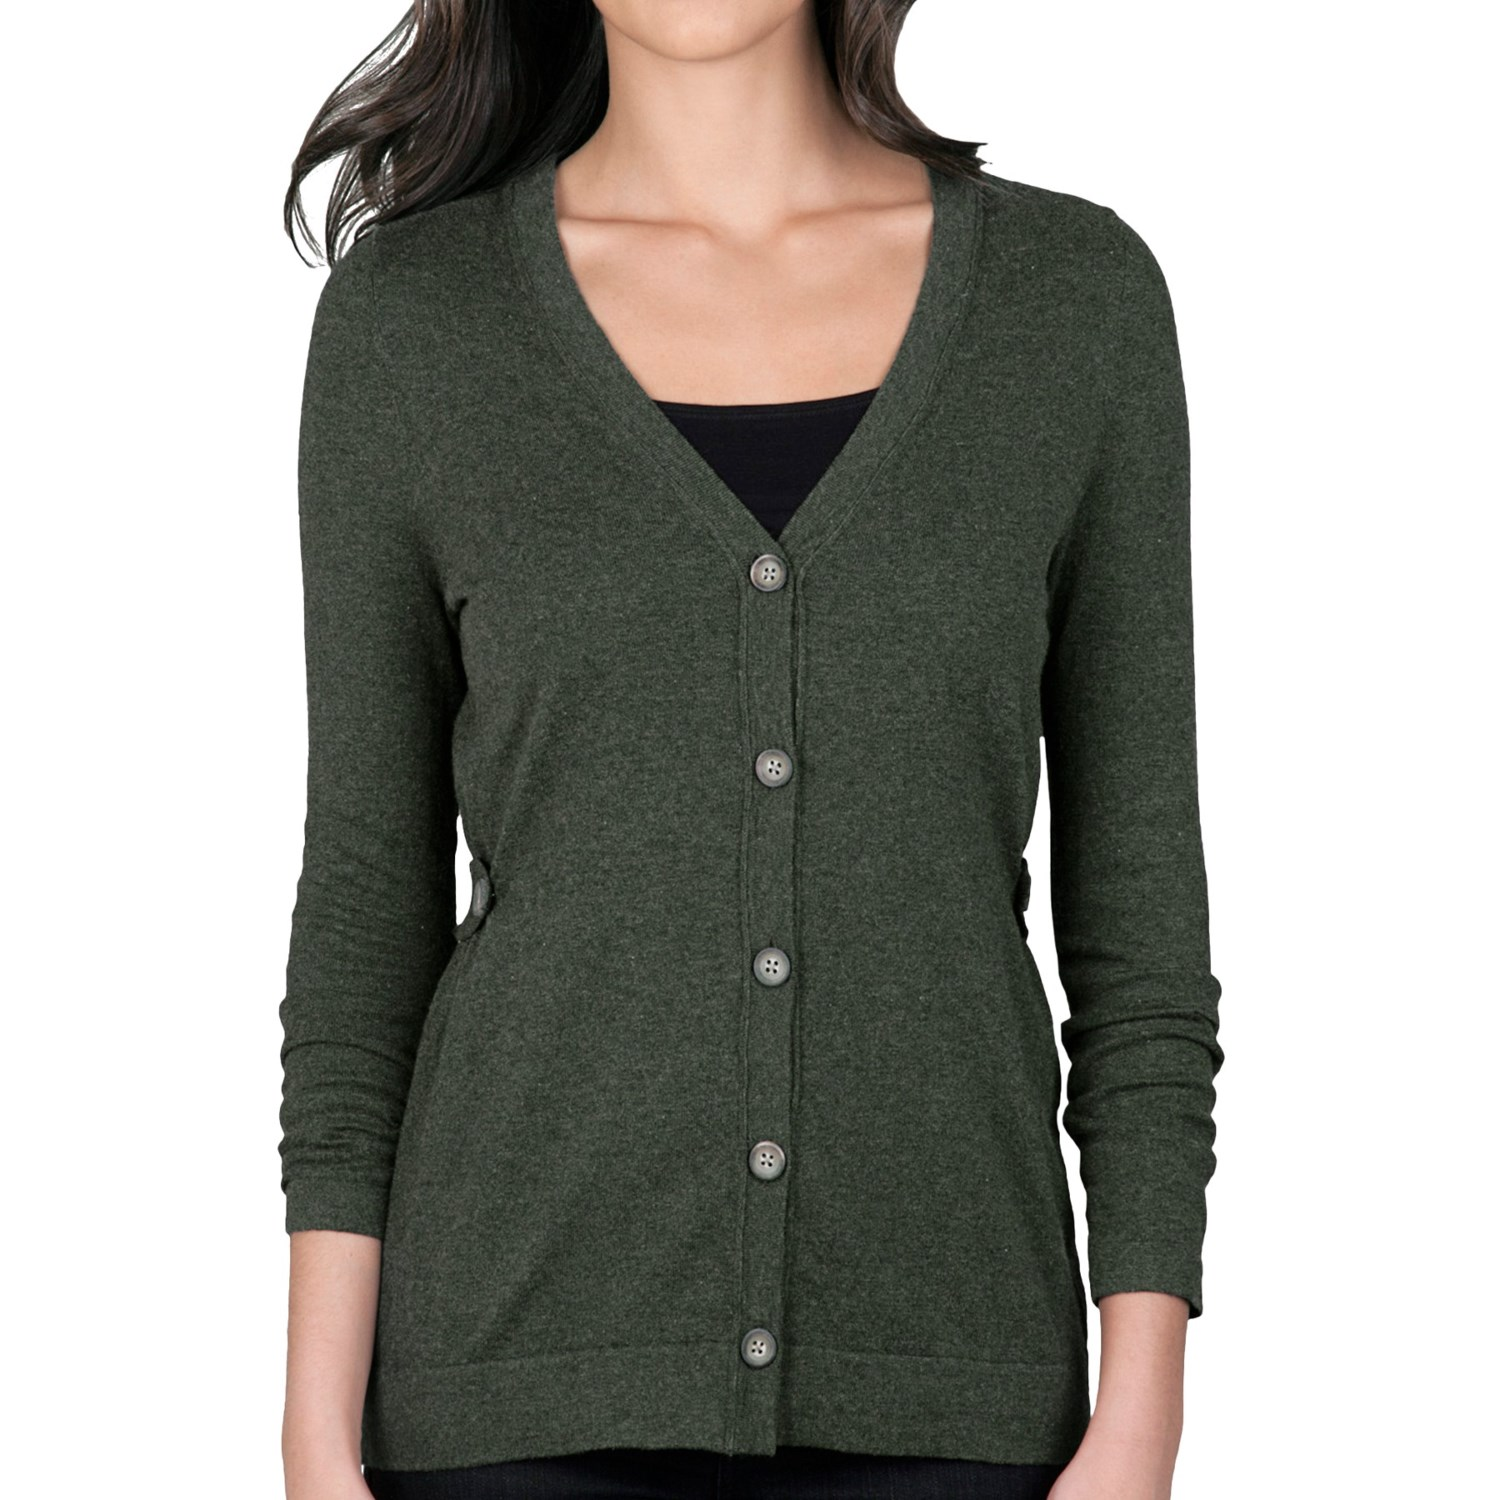 Cashmere Cardigan Sweater - Cashmere Sweater England